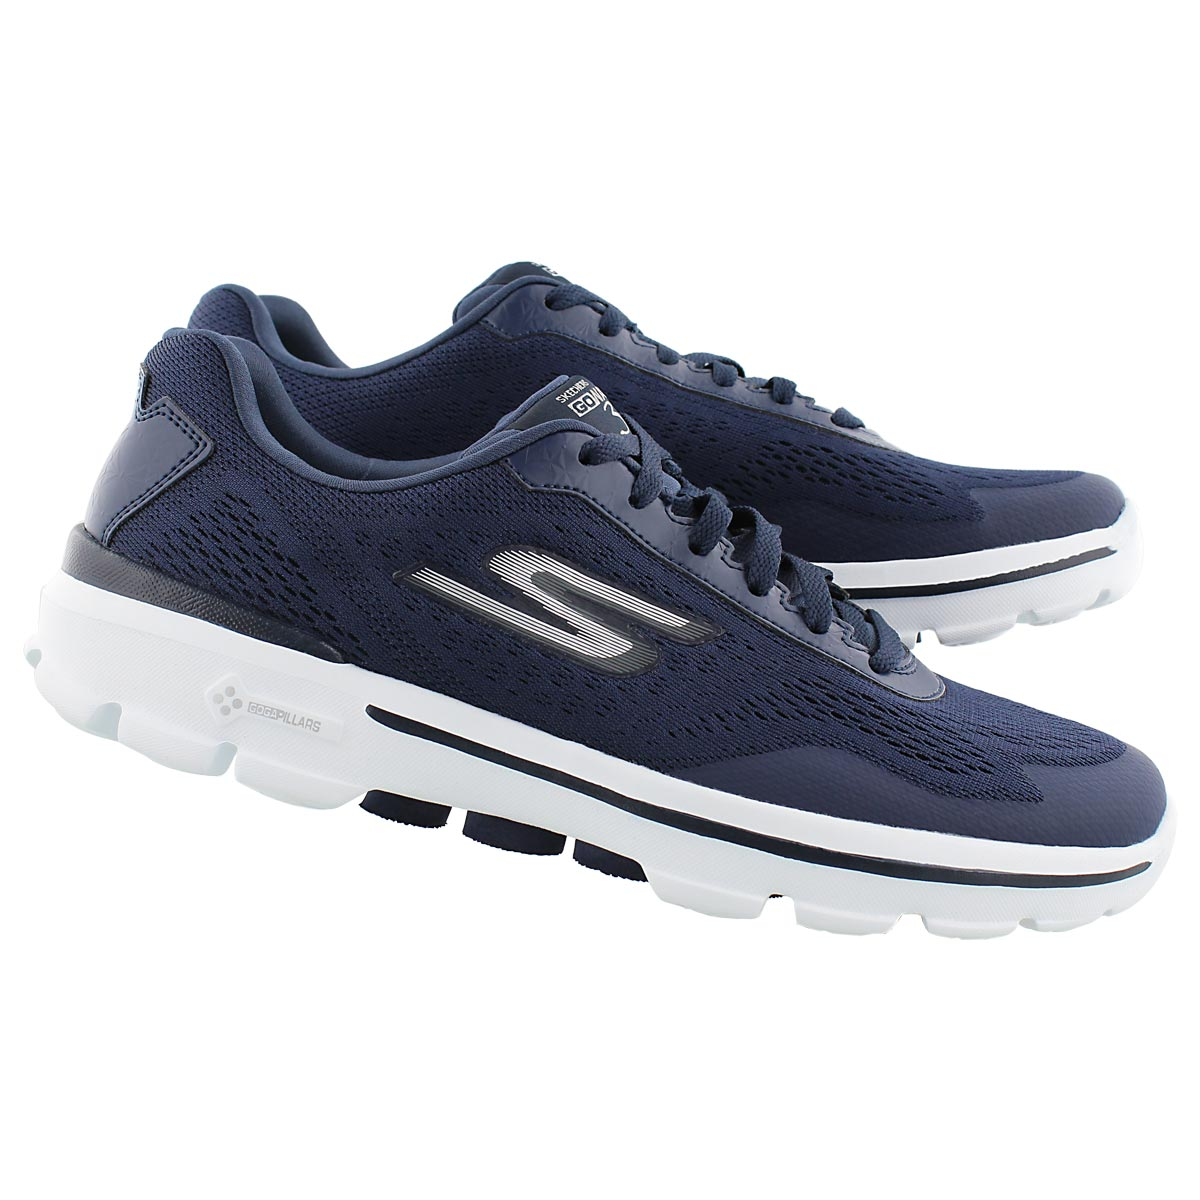 Mns GOwalk 3 nvy lace-up running shoe